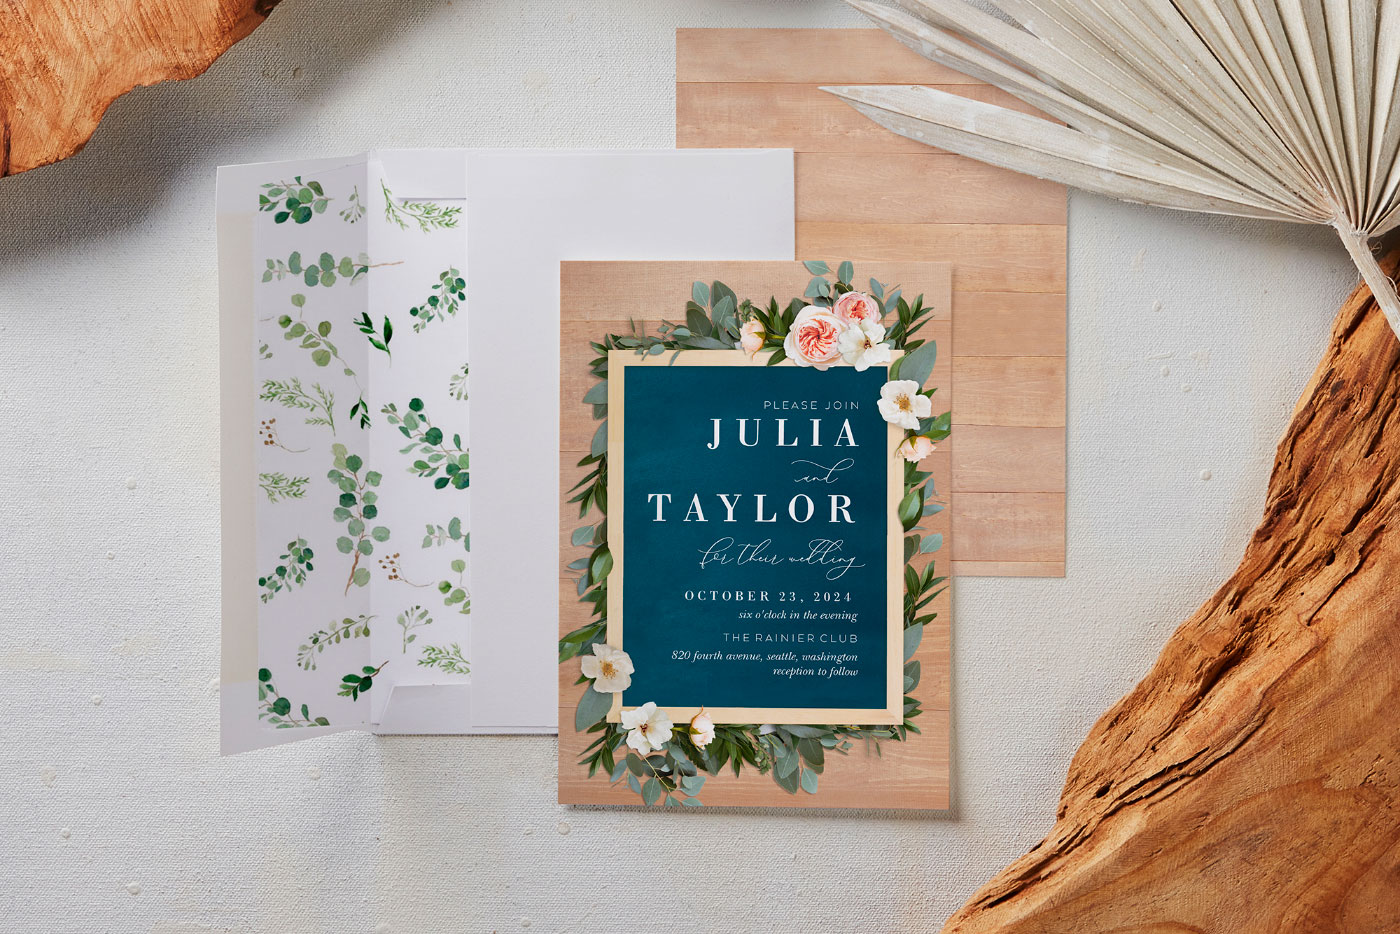 Colorful invitations with a bouquet of flowers